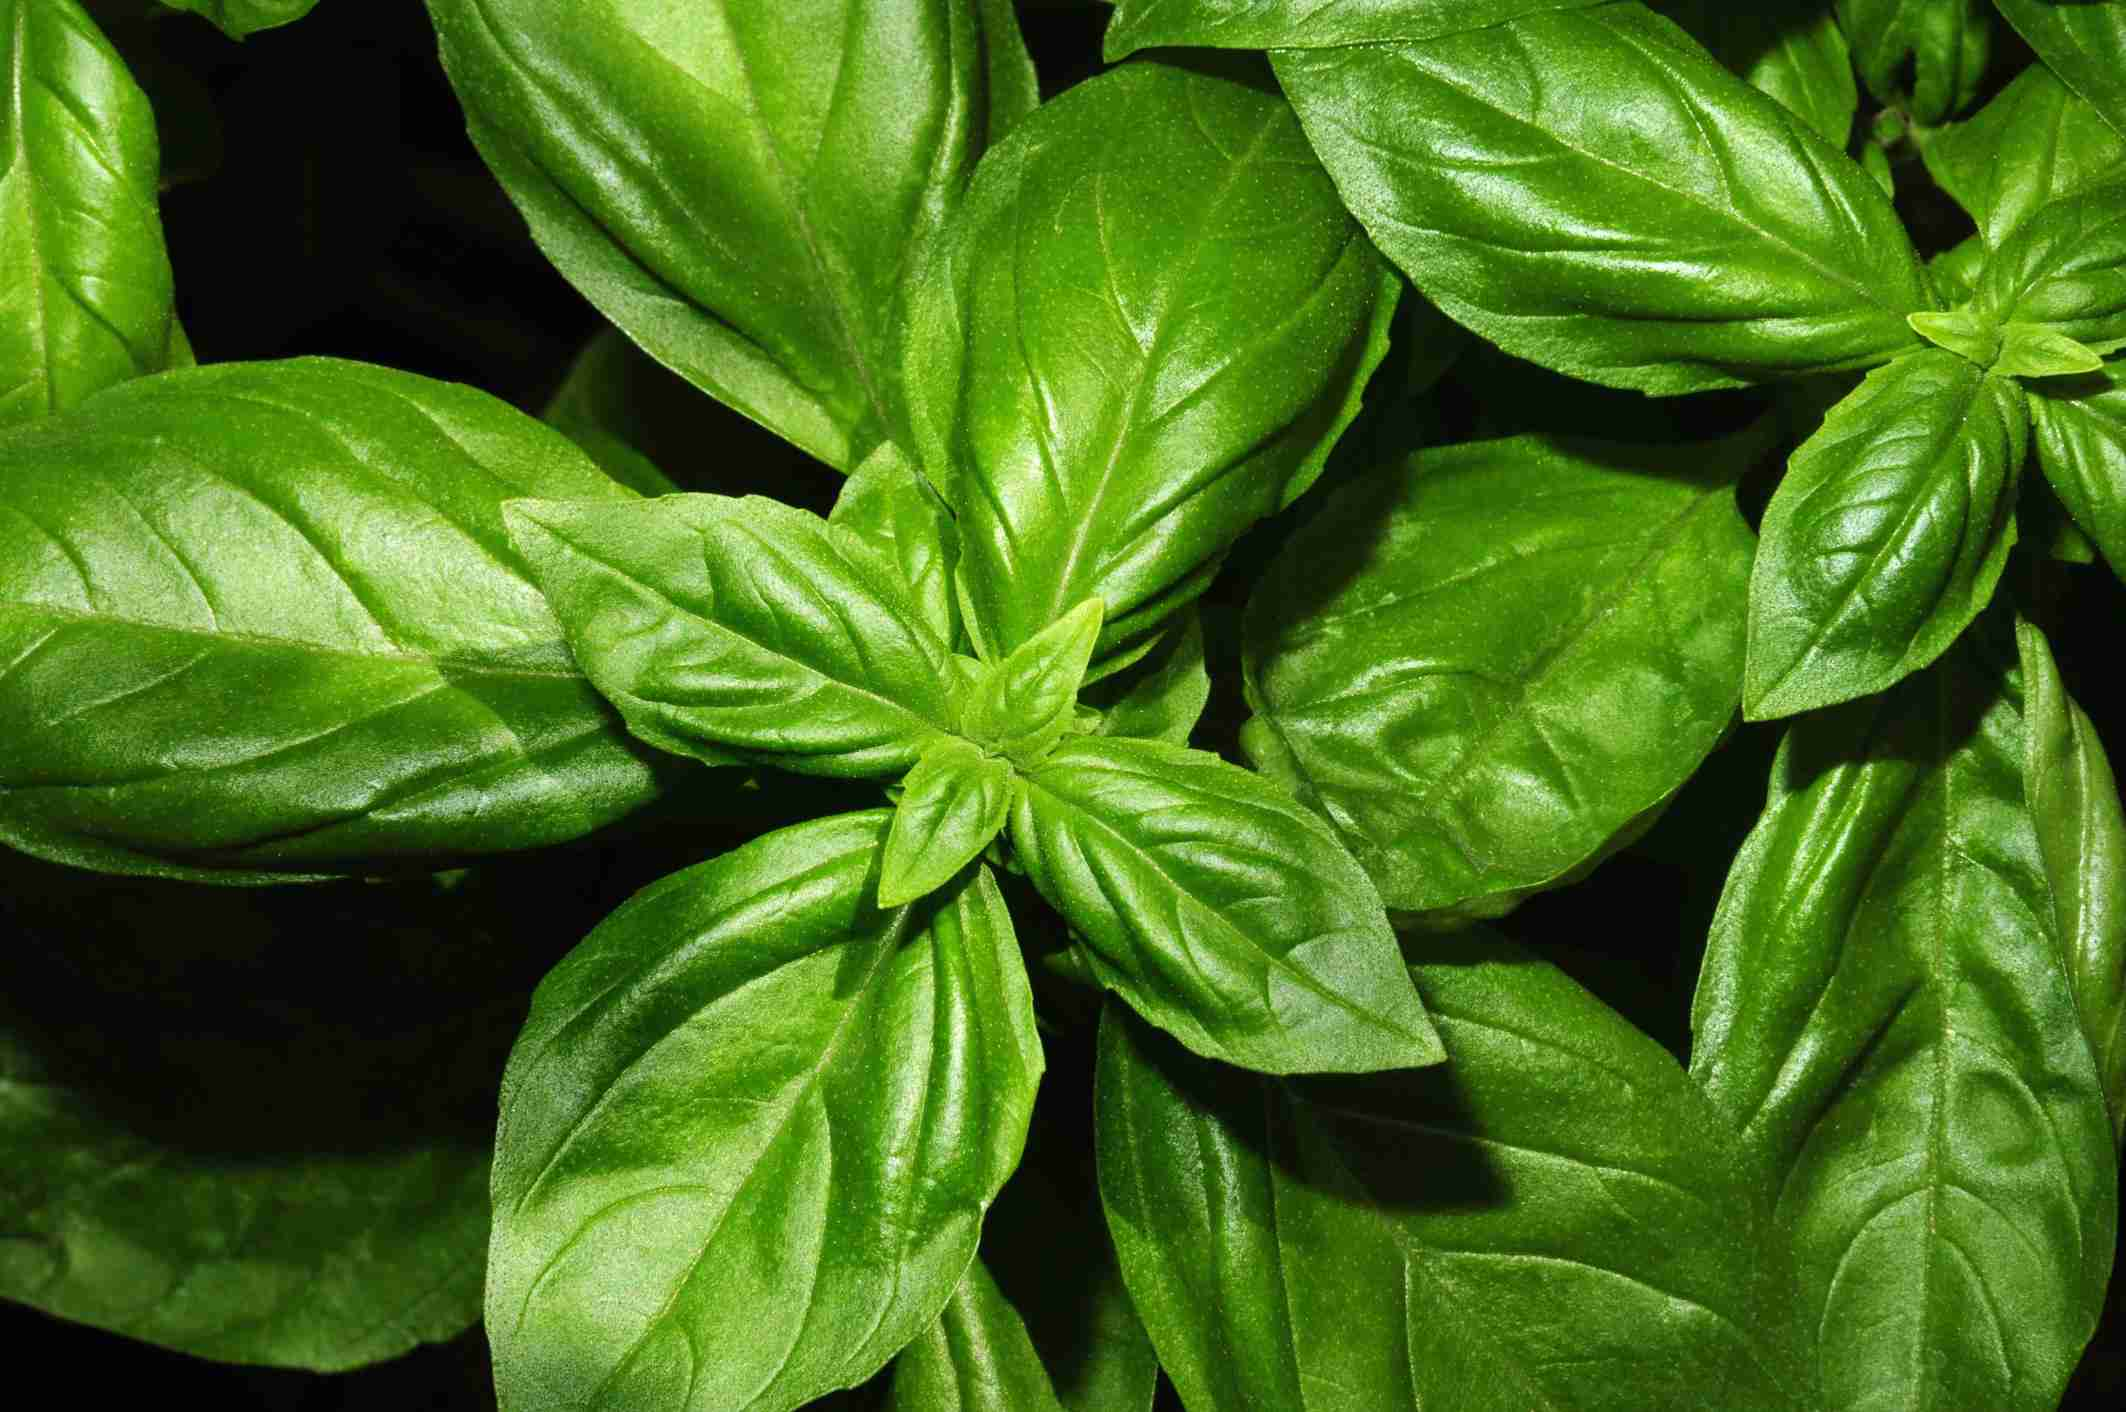 Organically grown sweet basil